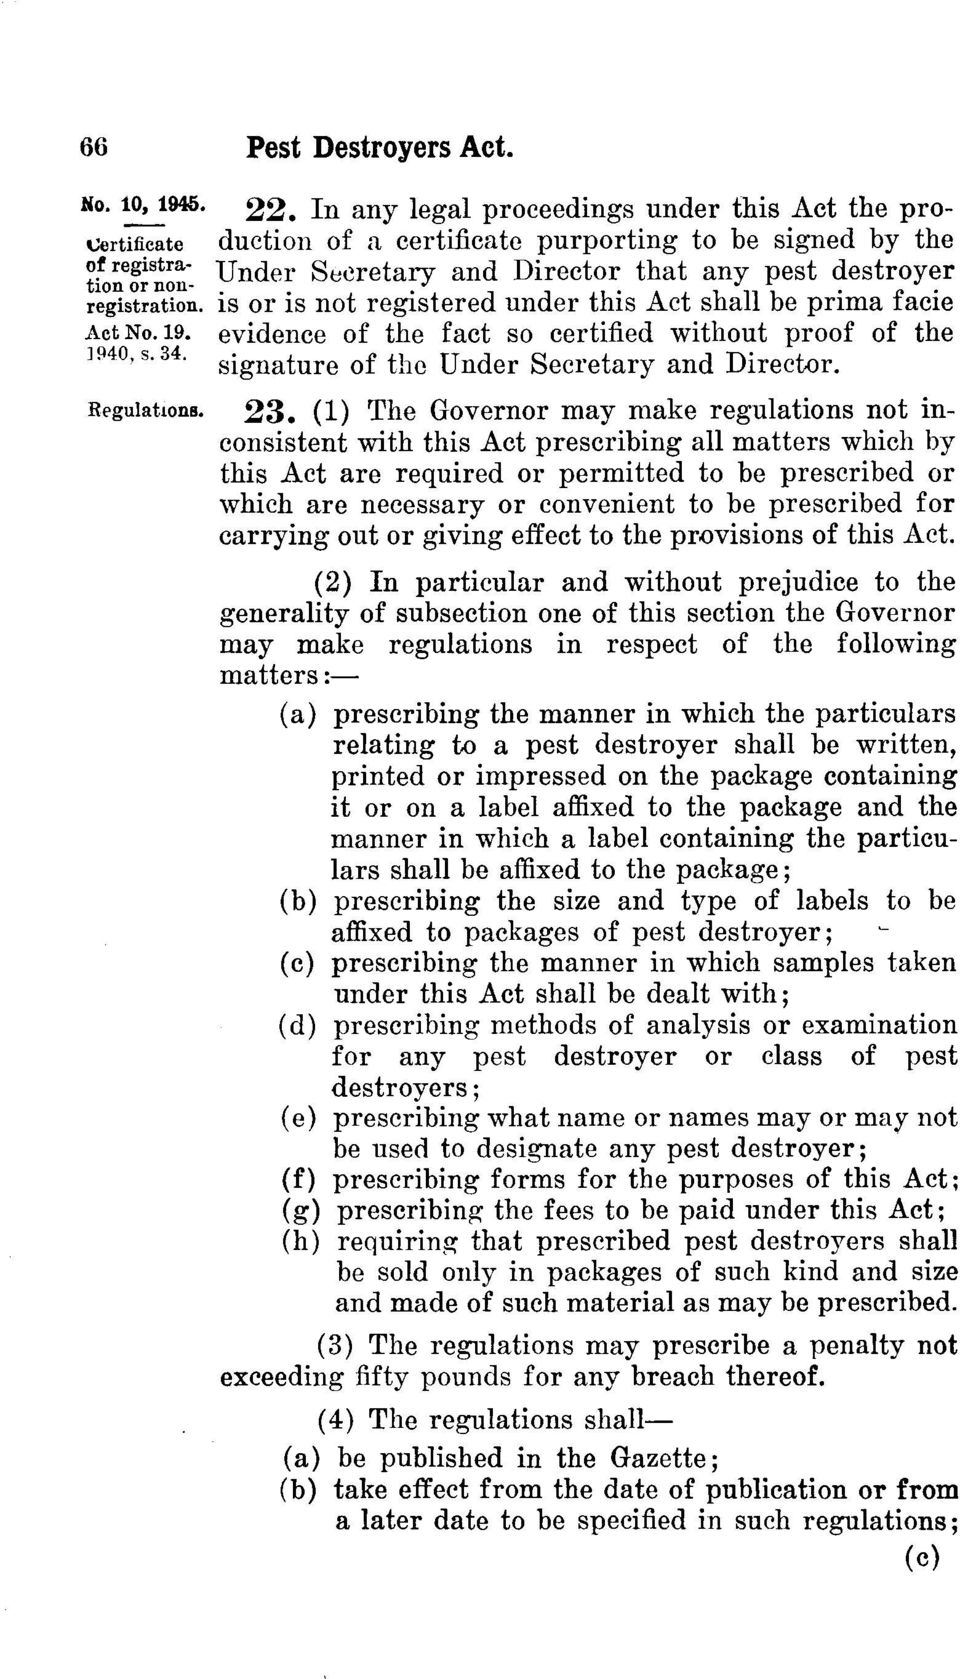 (1) The Governor may make regulations not inconsistent with this Act prescribing all matters which by this Act are required or permitted to be prescribed or which are necessary or convenient to be